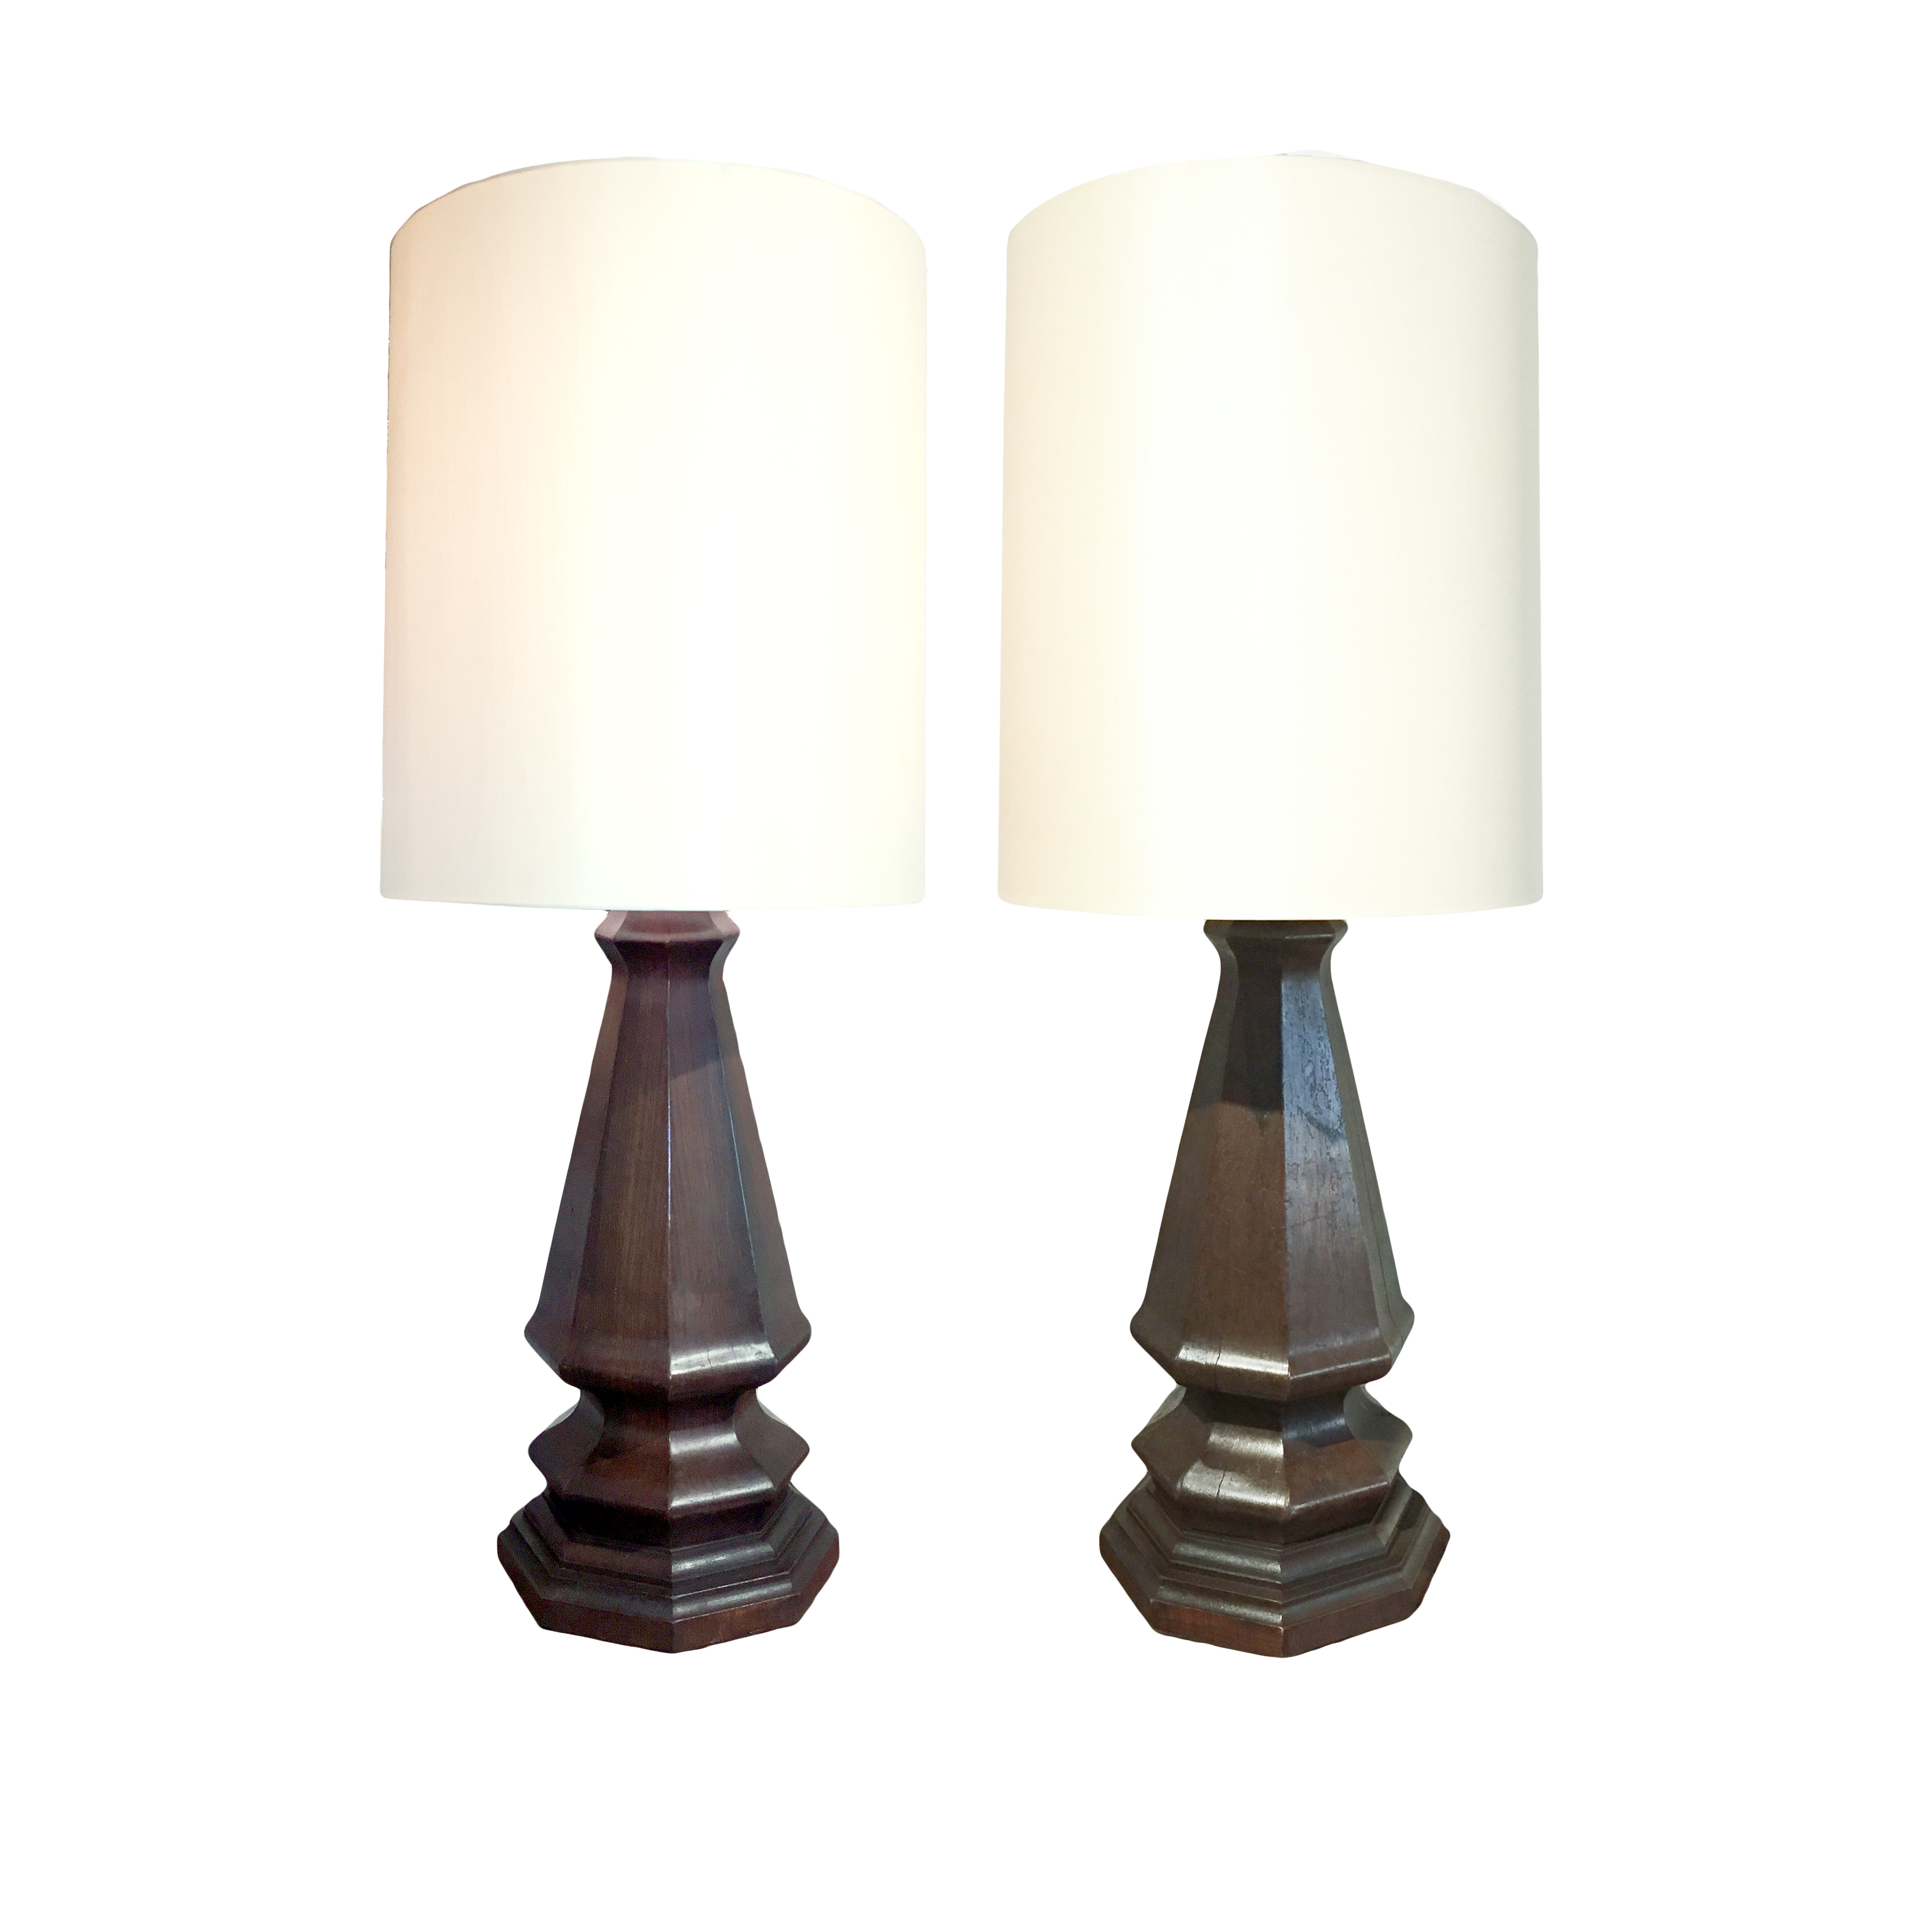 Antique wooden table lamps - Pair Of Large Scale Wooden Table Lamps English Circa 1900